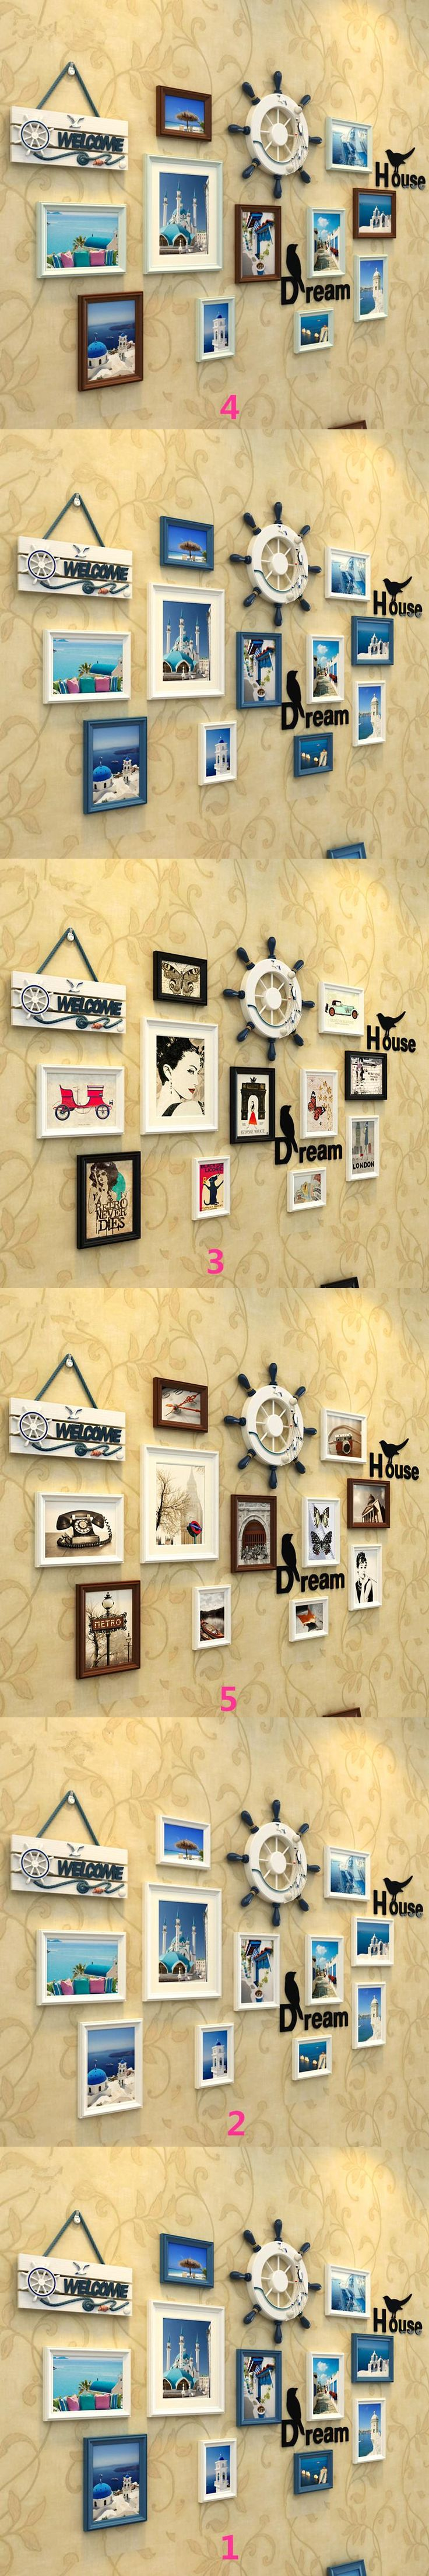 1 Set(15 pcs) Mediterranean Style Picture Photo Frame Wood  Wall Mural Photos Frames Wall Sticker DIY Home Decor   Removable